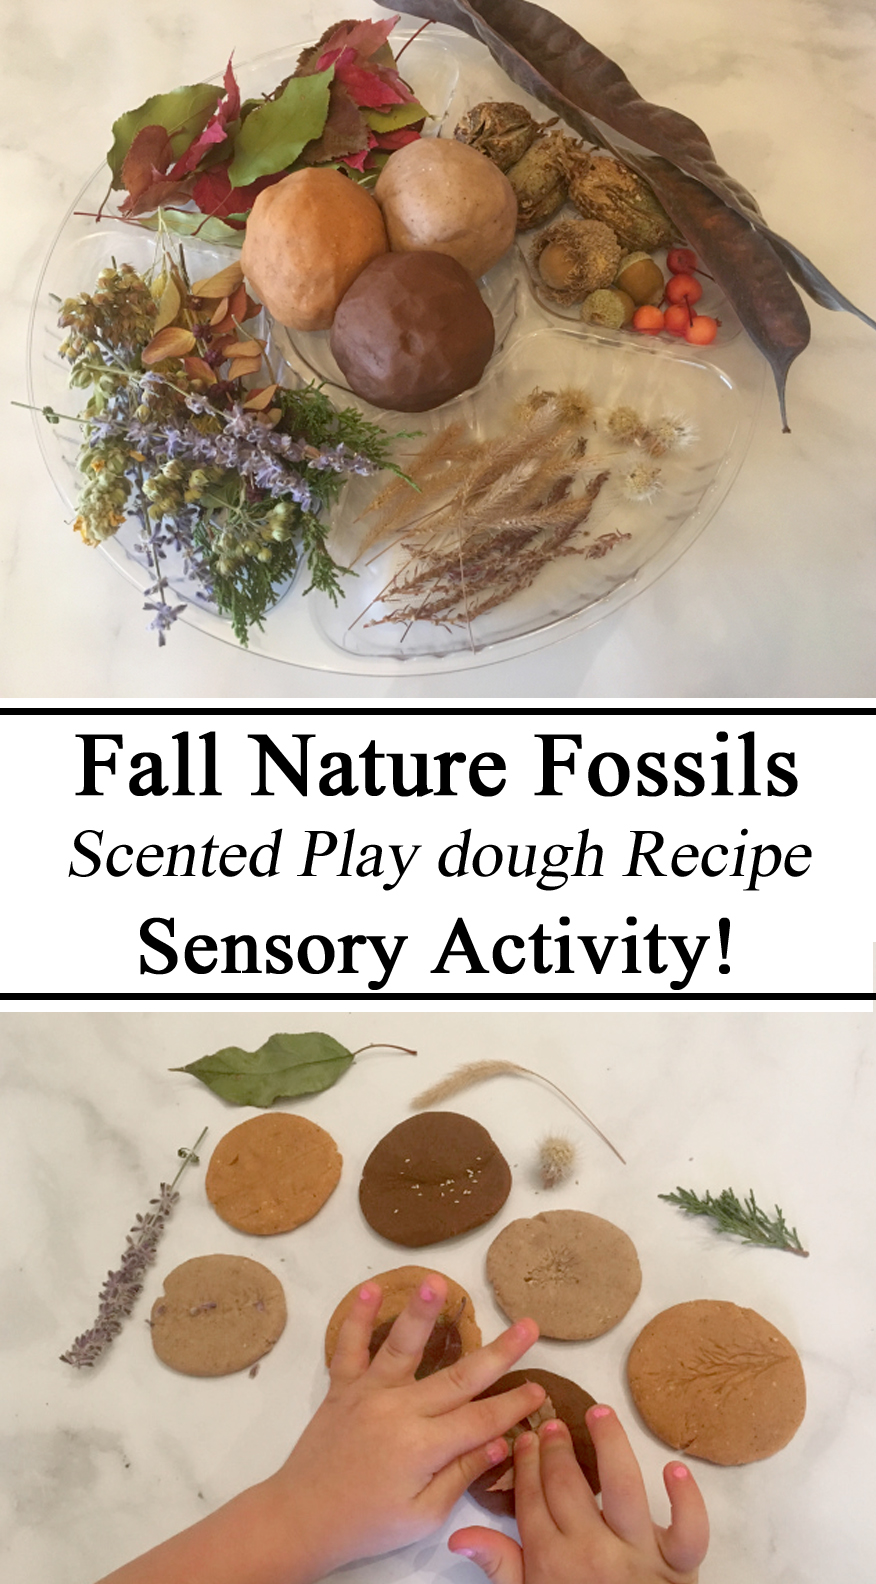 Nature Fossils, Scented Playdough, Playdoh, Recipe, Naturee Activities, Kids, Toddlers, Preschool, Homeschool, Homeschooling, Educational, Hands on Learning, Montessori, Waldorf, Homeschool, Homeschooling, Preschool, Educational, DIY